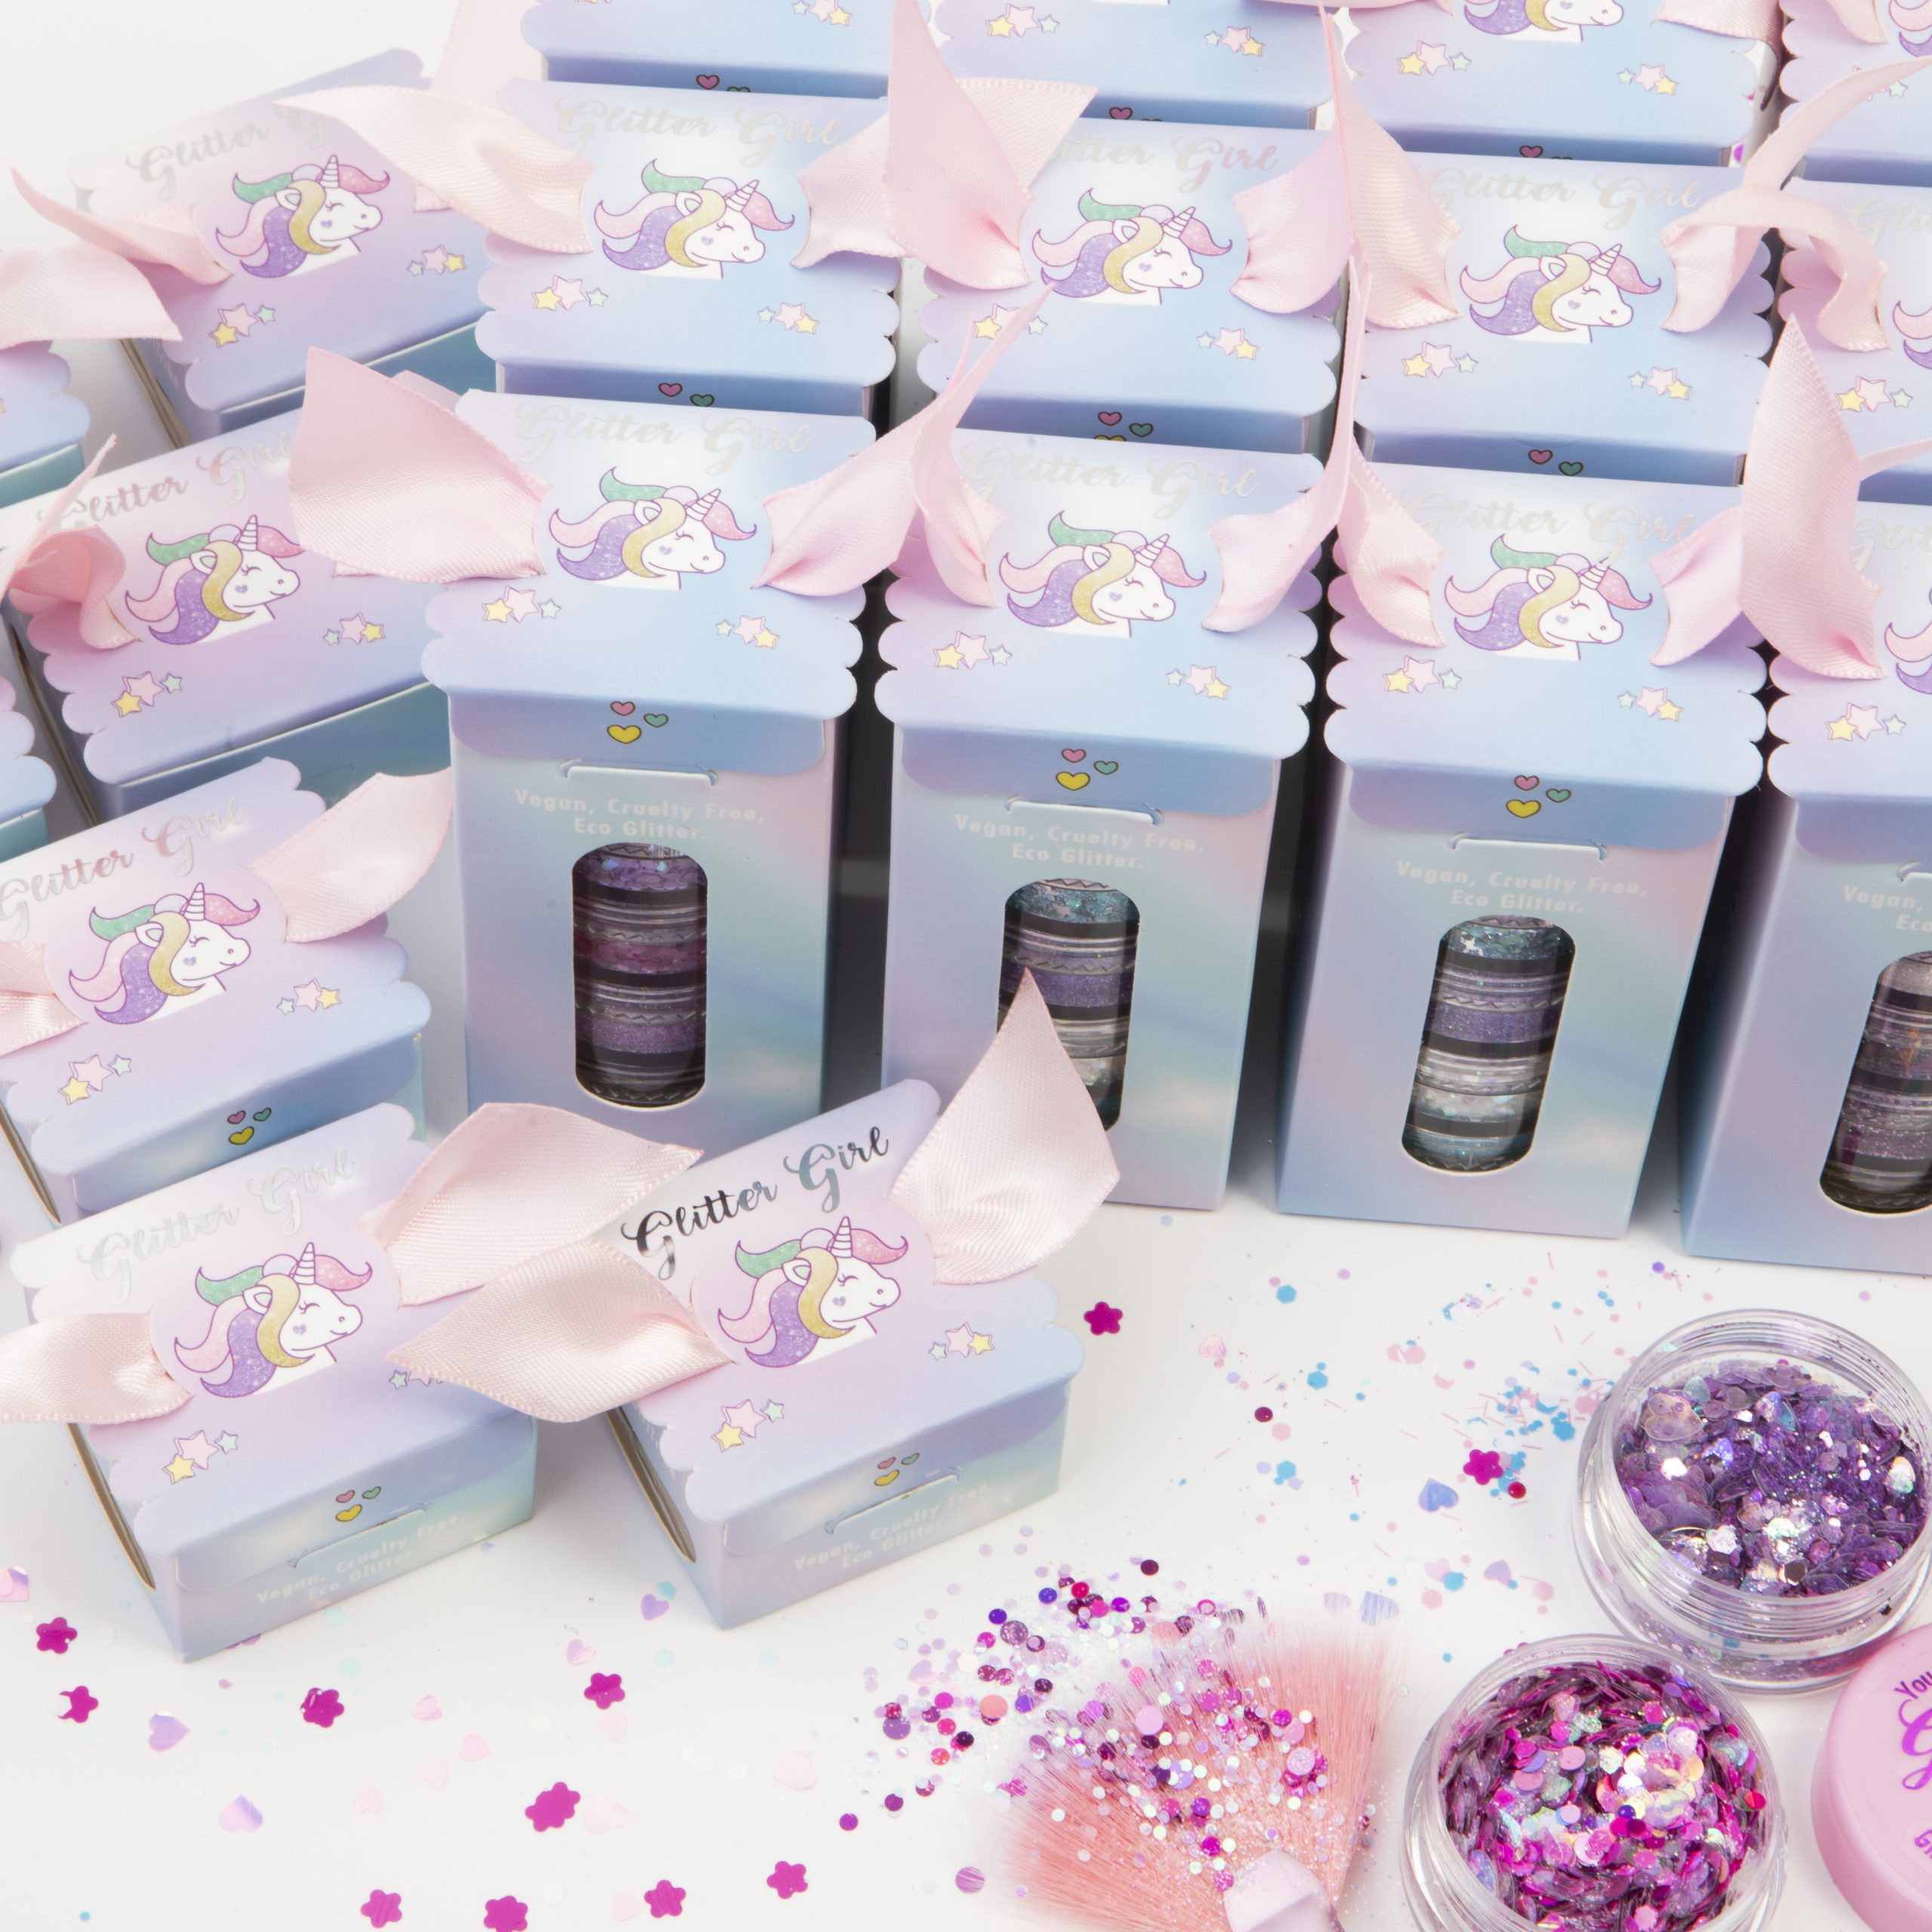 Eco Glitter Collections